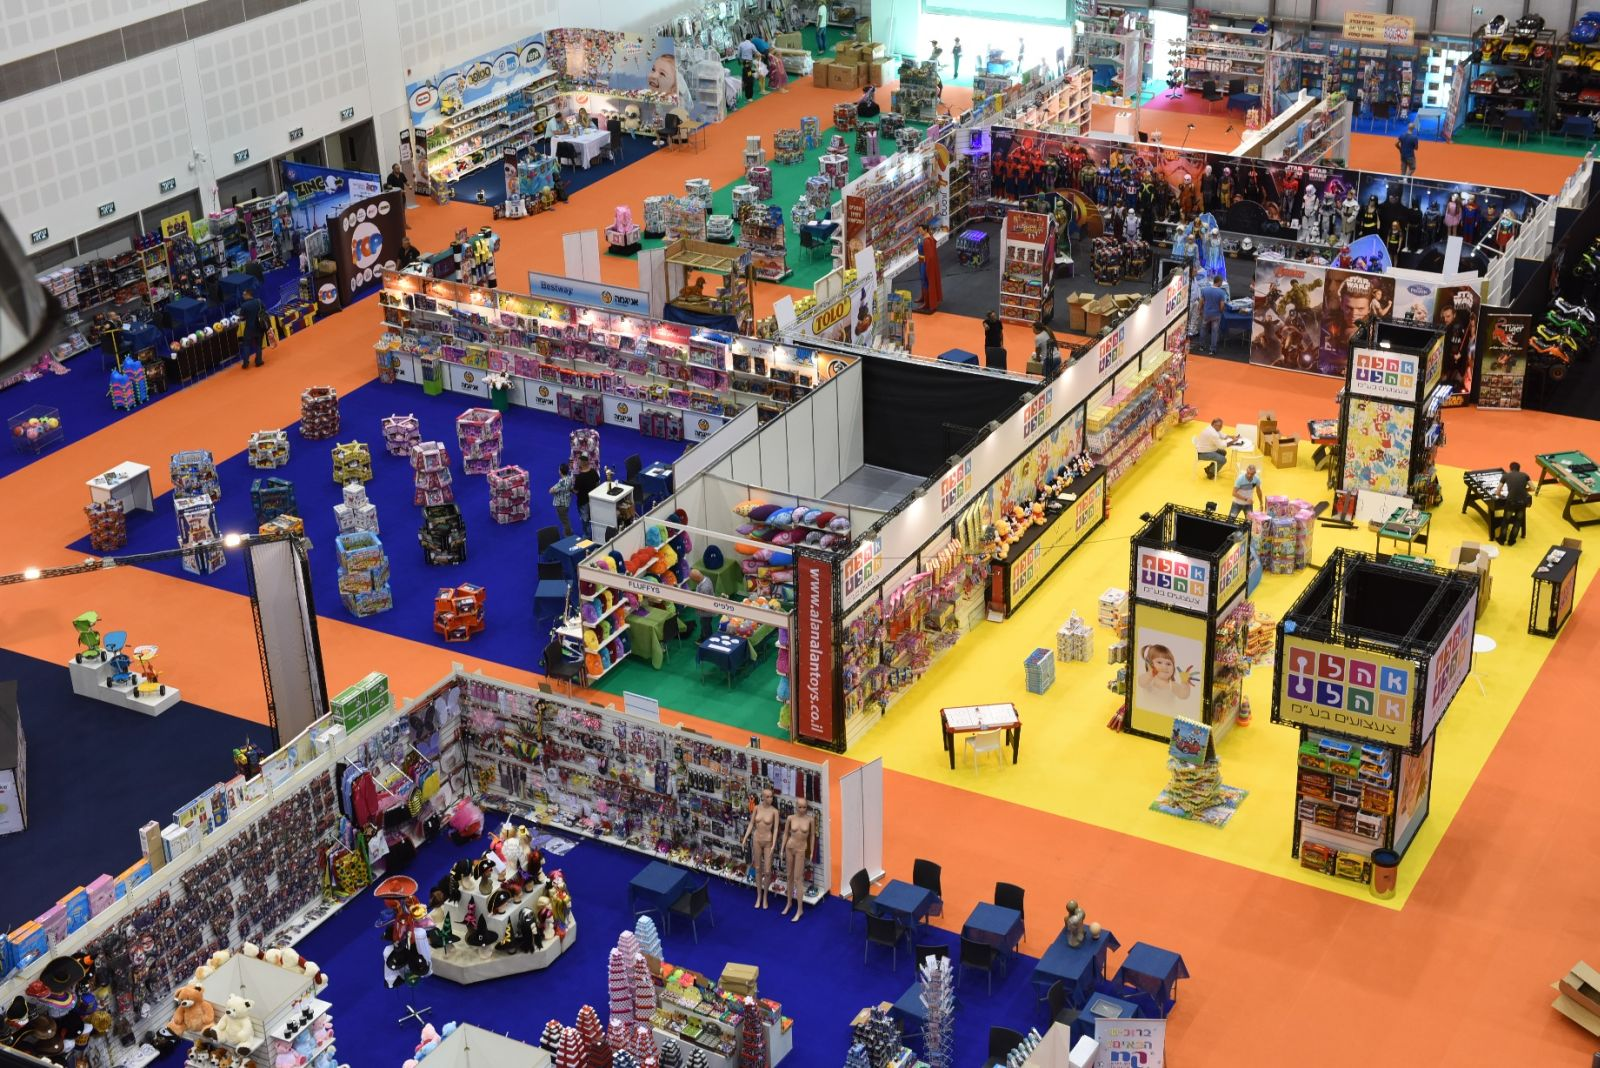 Scenes from the 2015 Toy Time trade show in Tel Aviv. Photo by Kfir Sivan